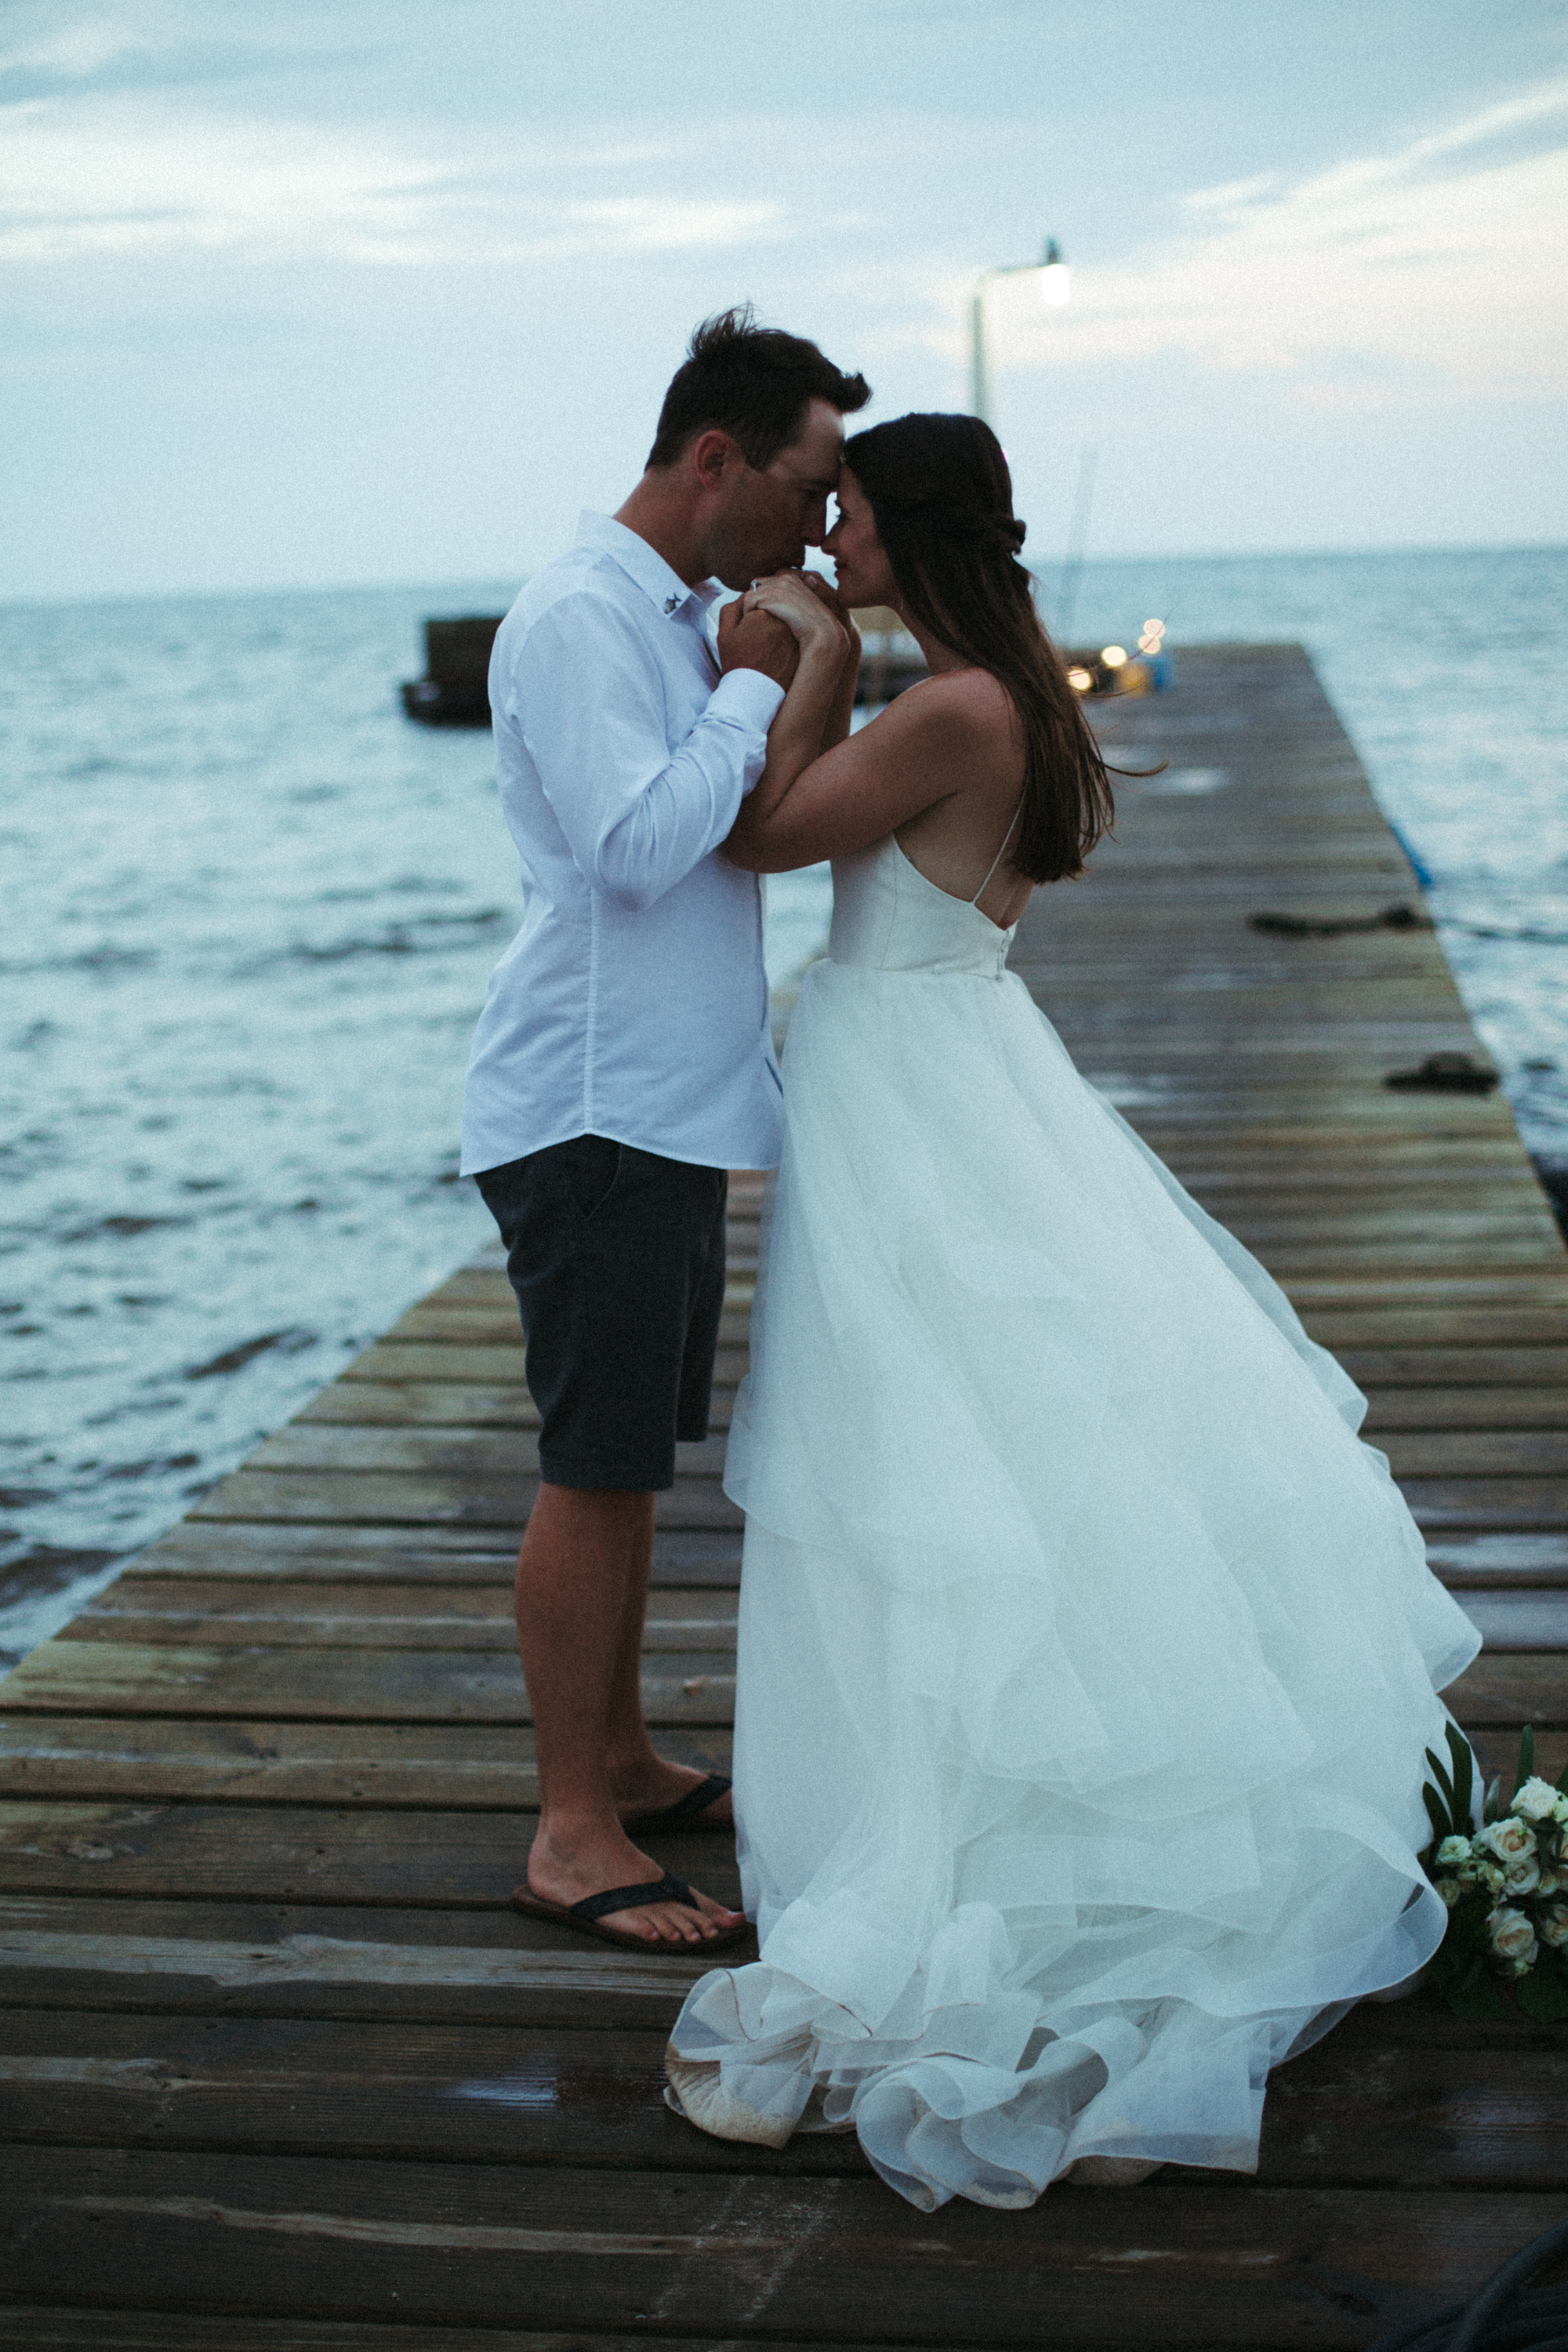 san-pescador-belize-wedding-christinemariephoto-j-k-142.jpg